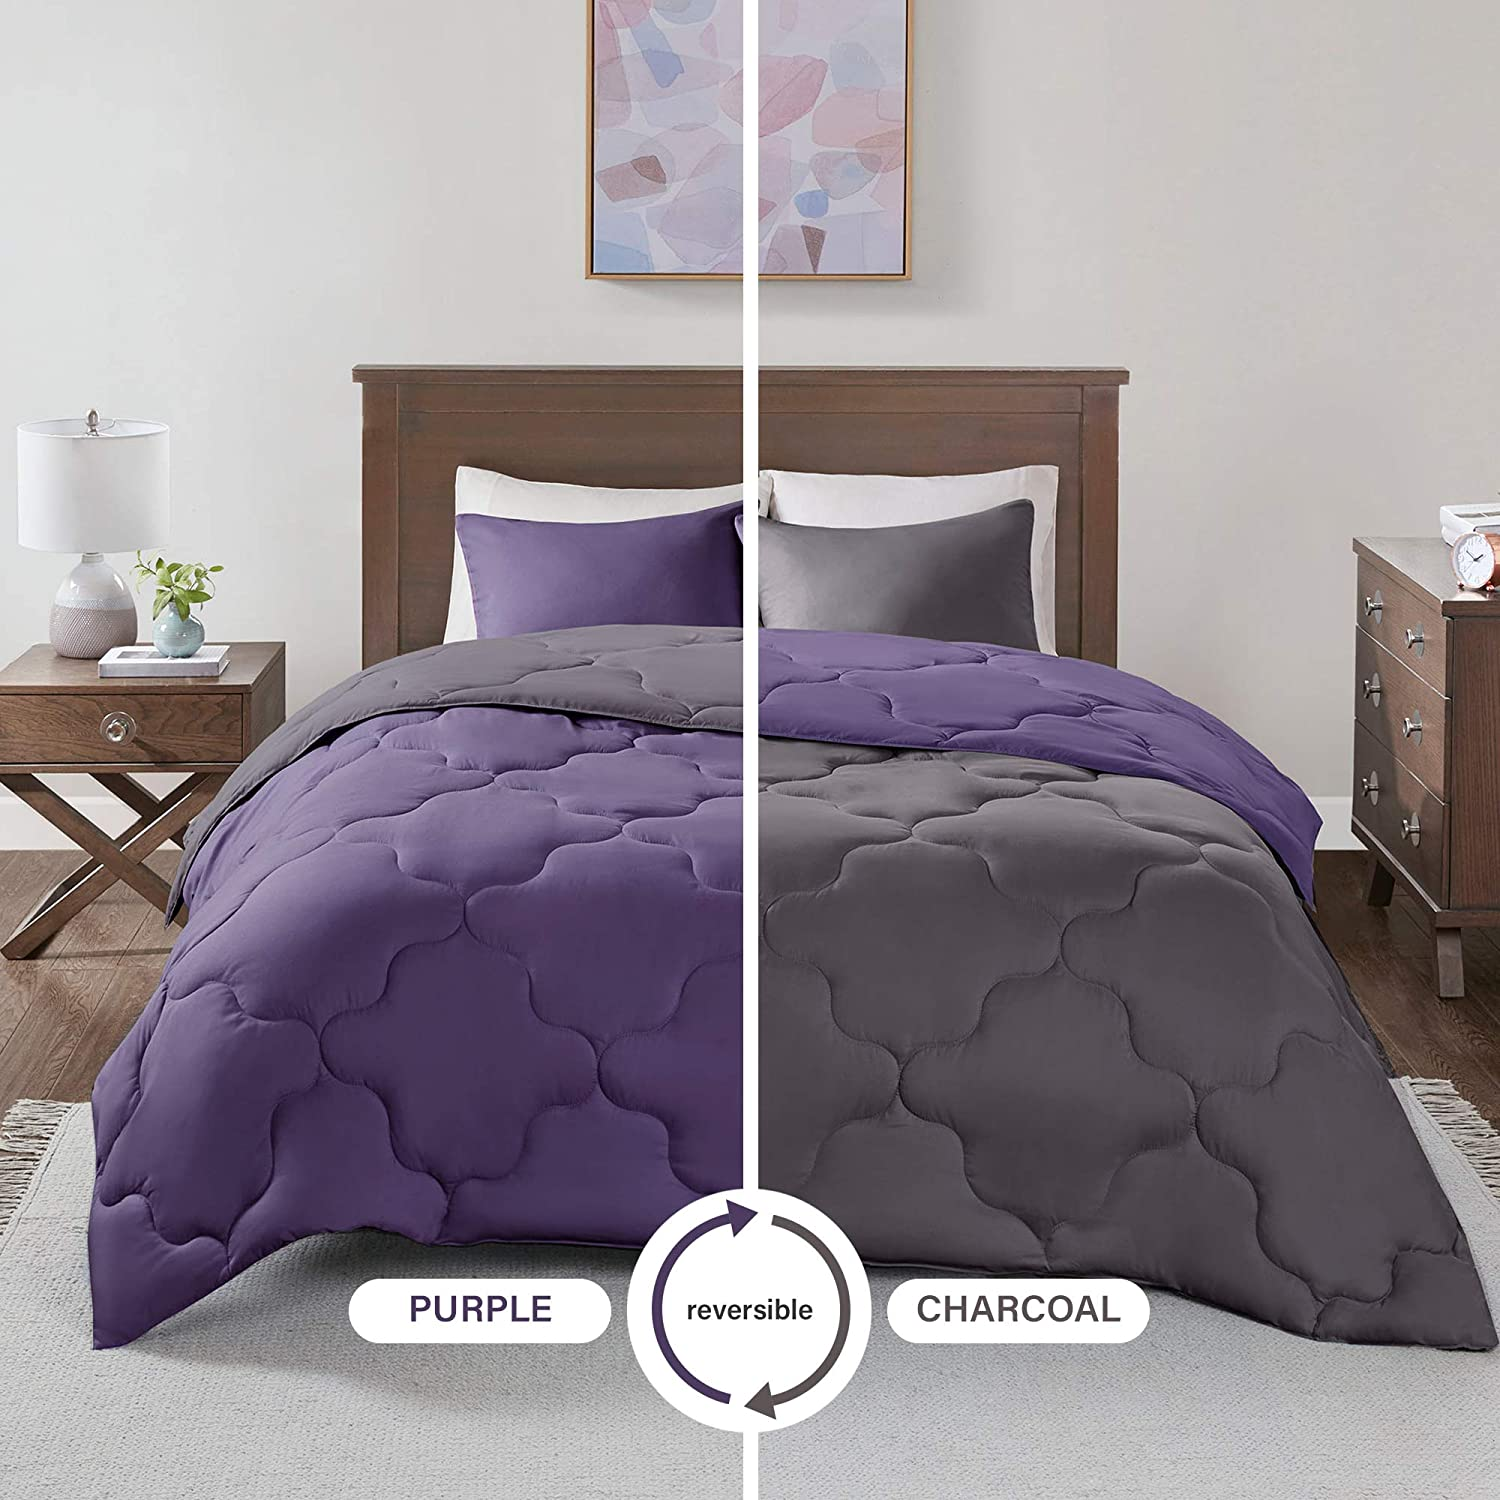 Comfort Spaces Vixie 3 Piece Comforter Set All Season Reversible Goose Down Alternative Stitched Geometrical Pattern Bedding, Full/Queen, Purple/Charcoal